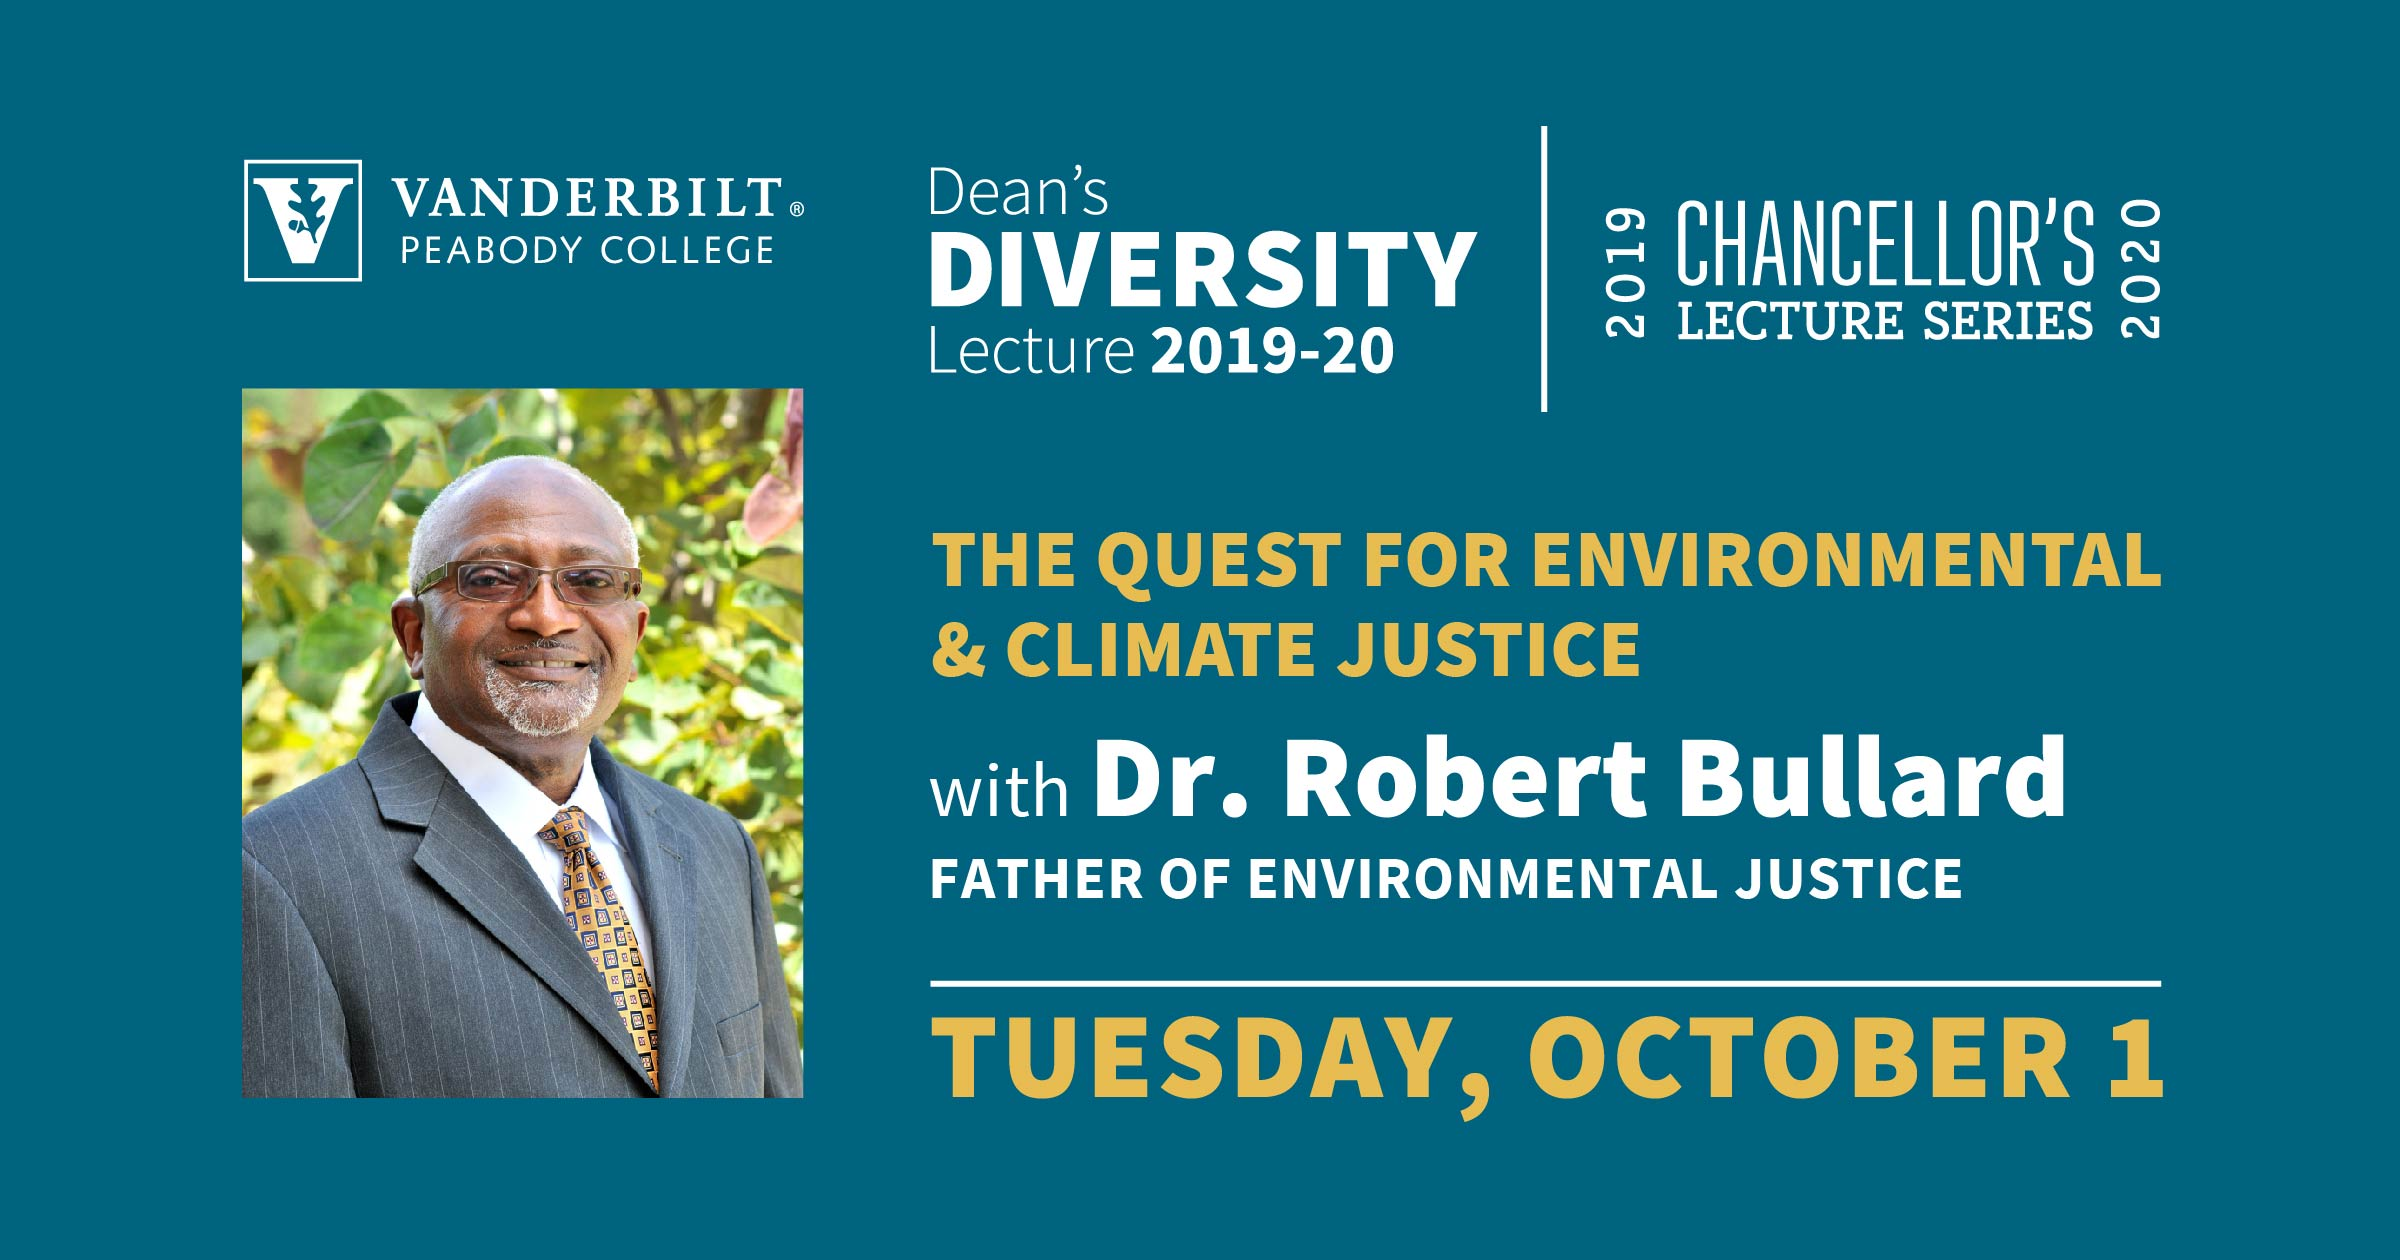 "Robert Bullard, award-winning author and Distinguished Professor of Urban Planning and Environmental Policy at Texas Southern University will give a lecture to the Vanderbilt community on Tuesday, Oct. 1 from 4:30 p.m. to 5:30 p.m. at the Wyatt Center Rotunda. Bullard's talk, ""The Quest for Environmental and Climate Justice,"" is co-presented by the Chancellor's Lecture Series and Peabody College's Dean's Diversity Lecture."